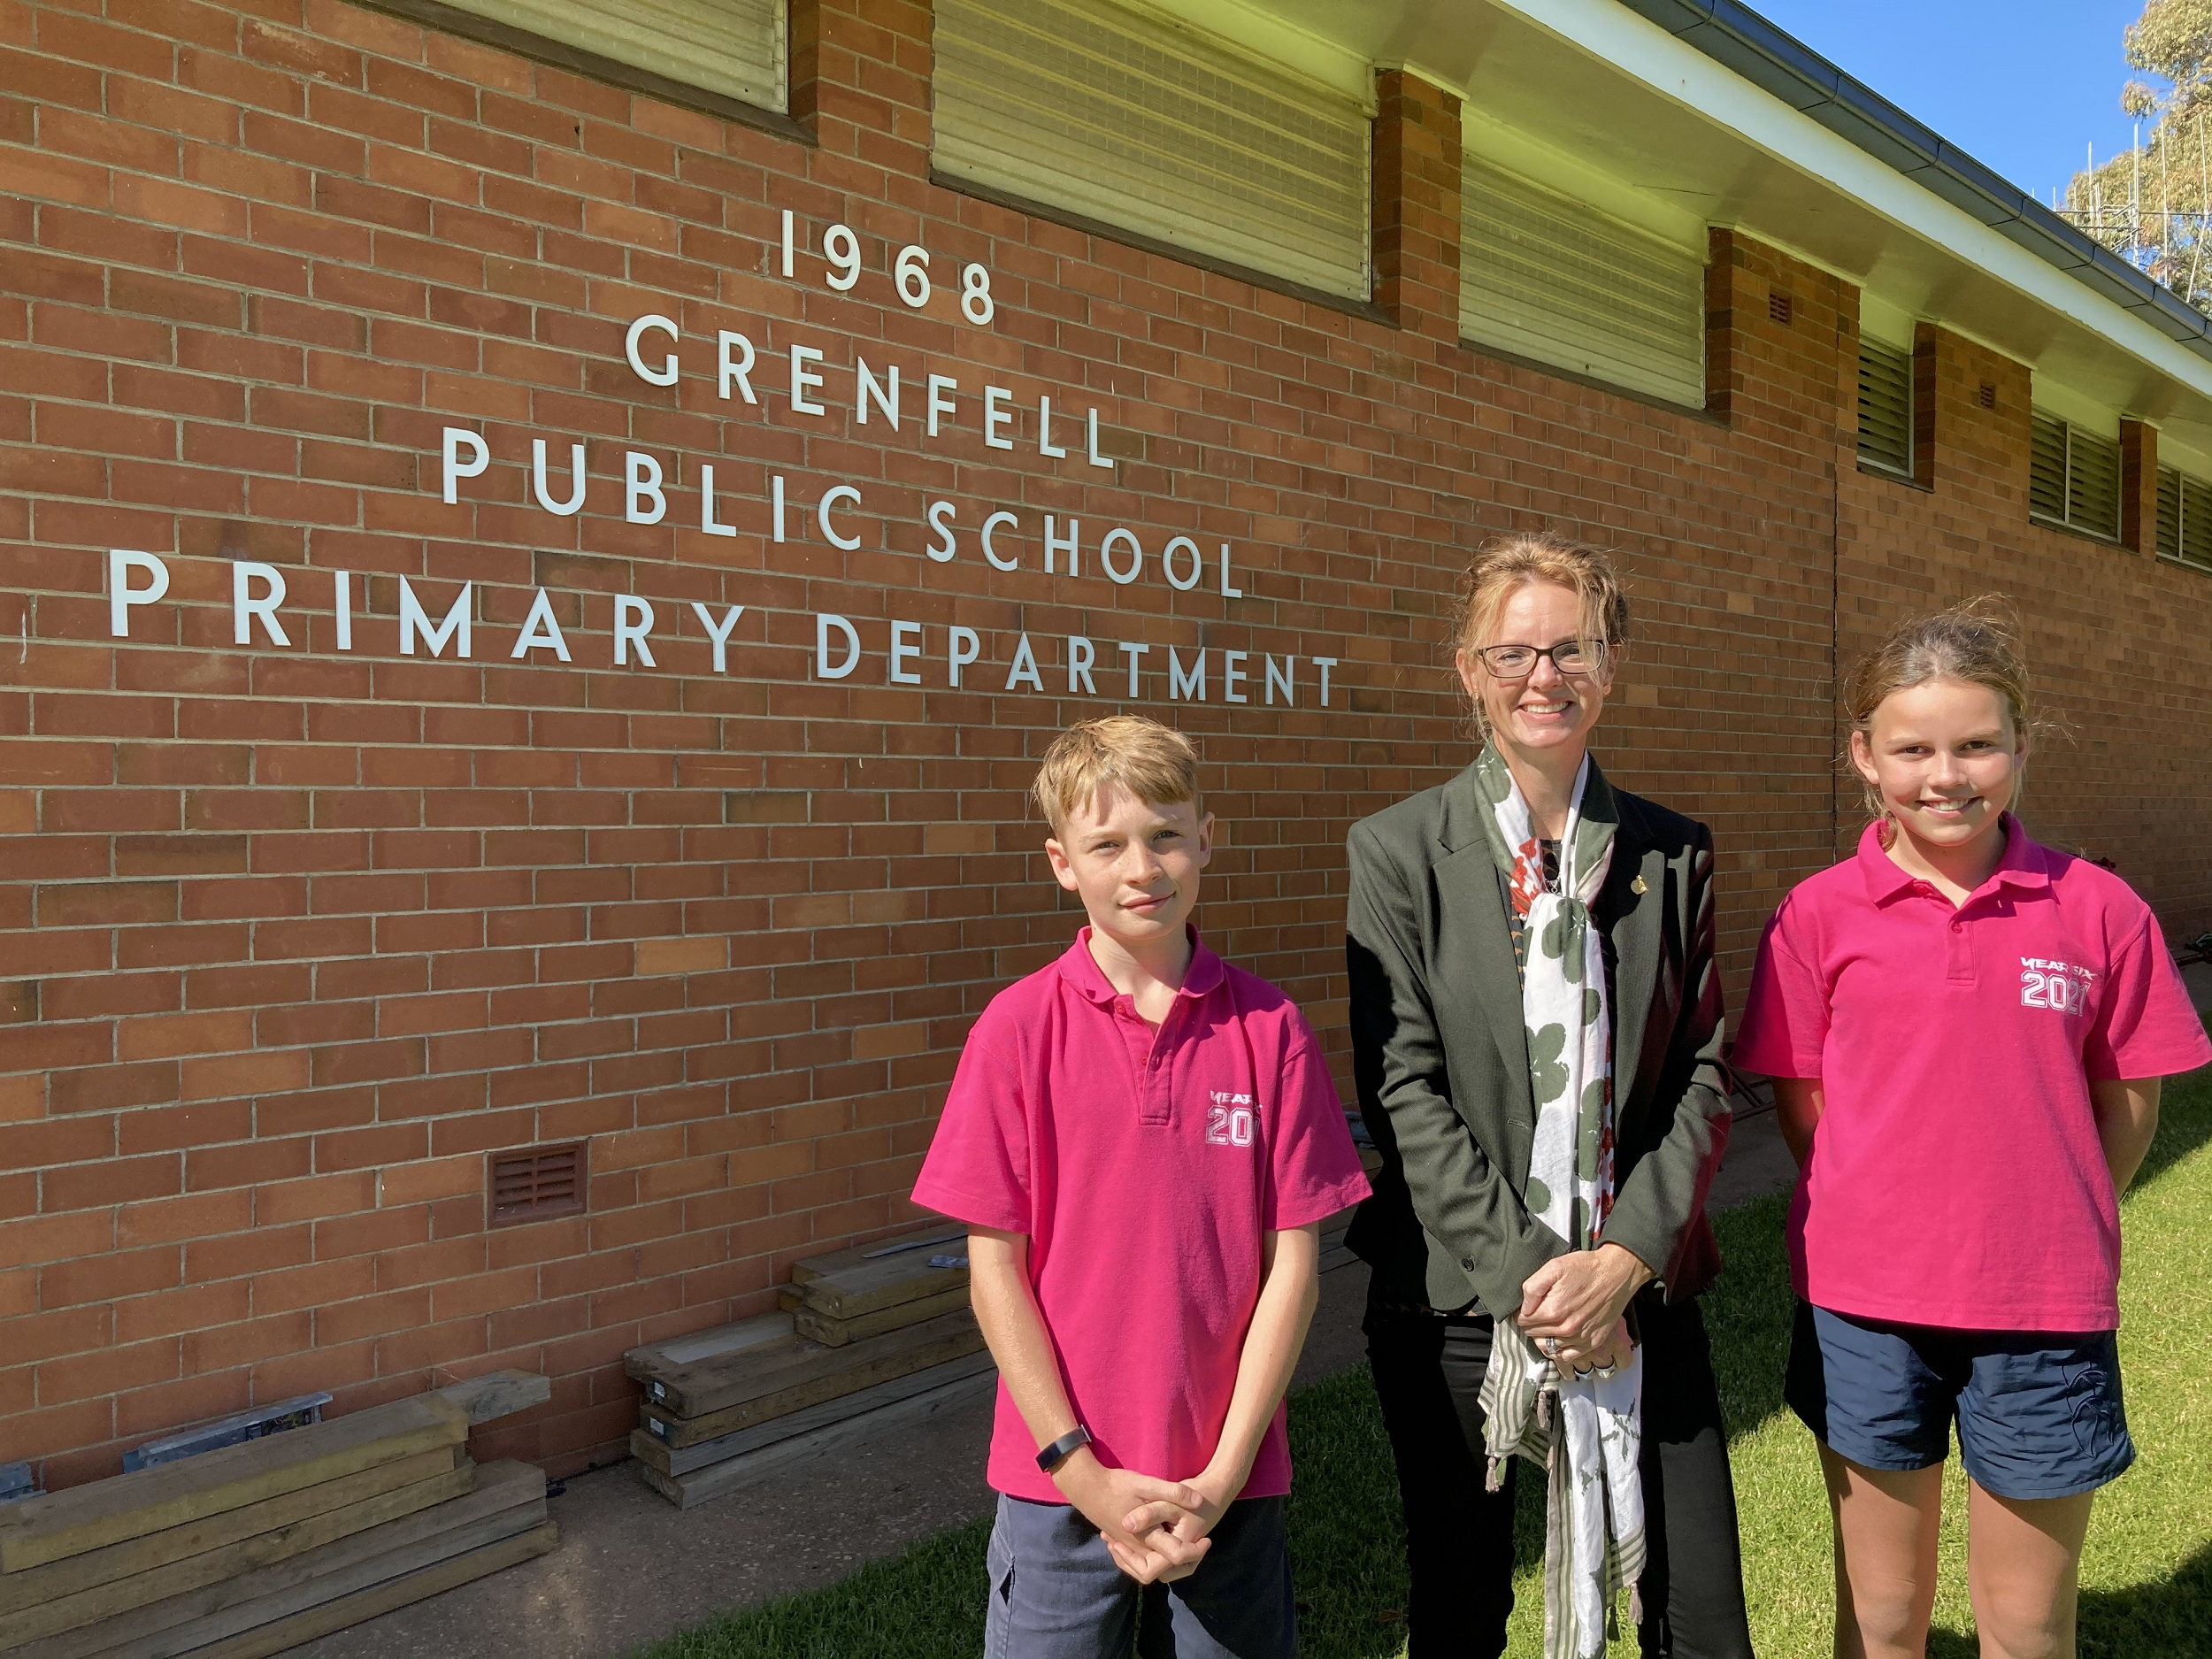 William Hedley, Steph Cooke MP wand Marley Loader stand next to a brick wall with a sign that says '1968 Grenfell Public School Primary Department'.